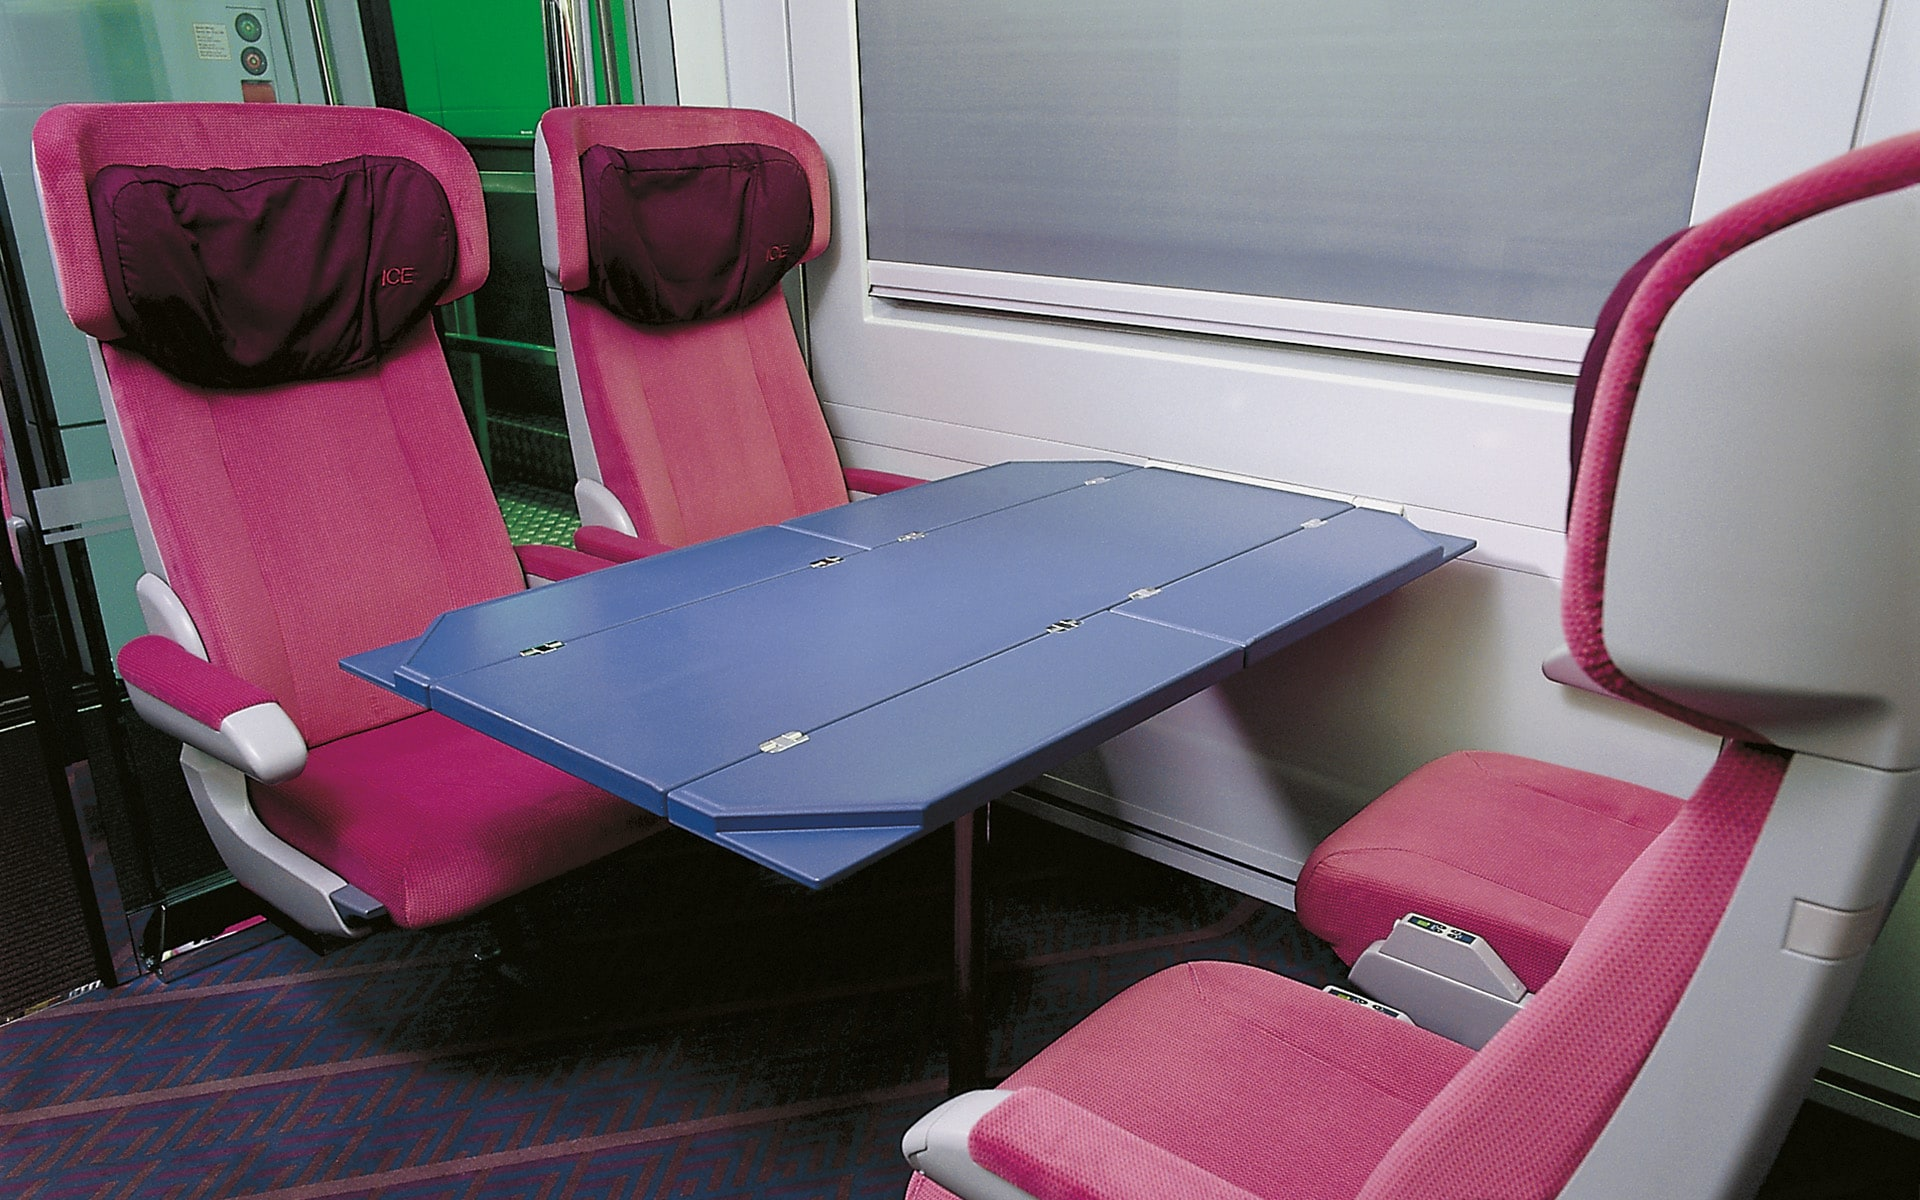 Family area in bright pink for the Intercity train of Deutsche Bahn by ITO Design, created in 1994